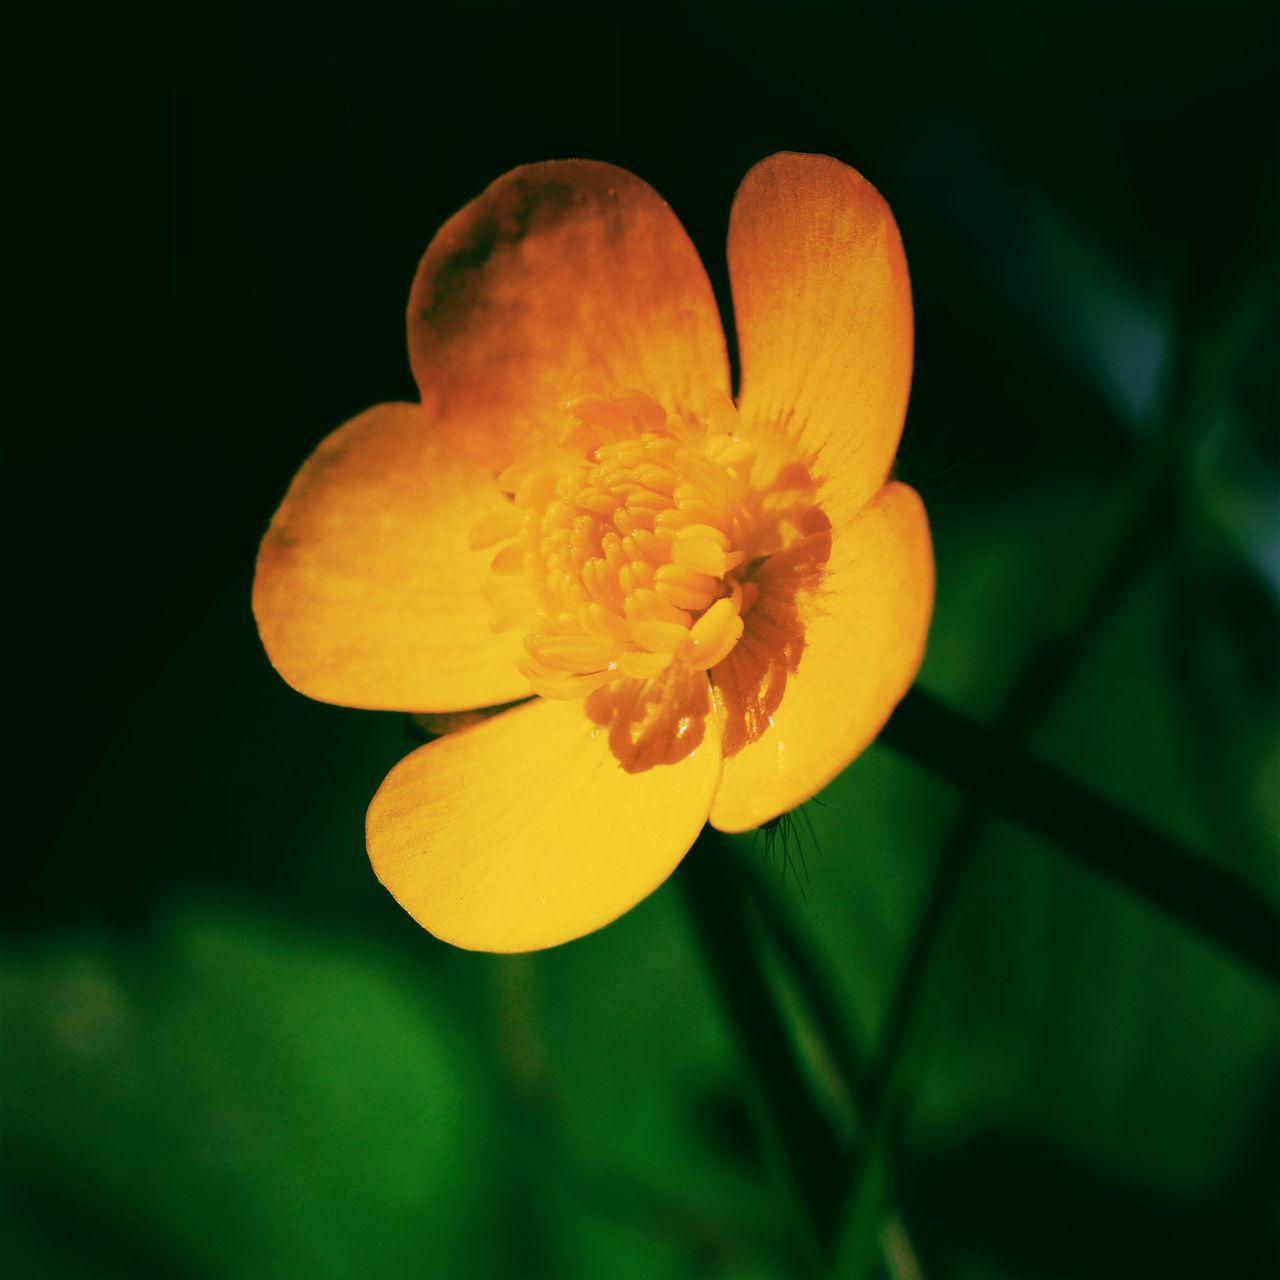 Little buttercup. Flower Nature Growth Yellow Plant Beauty In Nature Petal Fragility Close-up No People Flower Head Freshness Blooming Outdoors Day Buttercup Stem Stems Macro Macro Photography Macro_collection Nature_collection